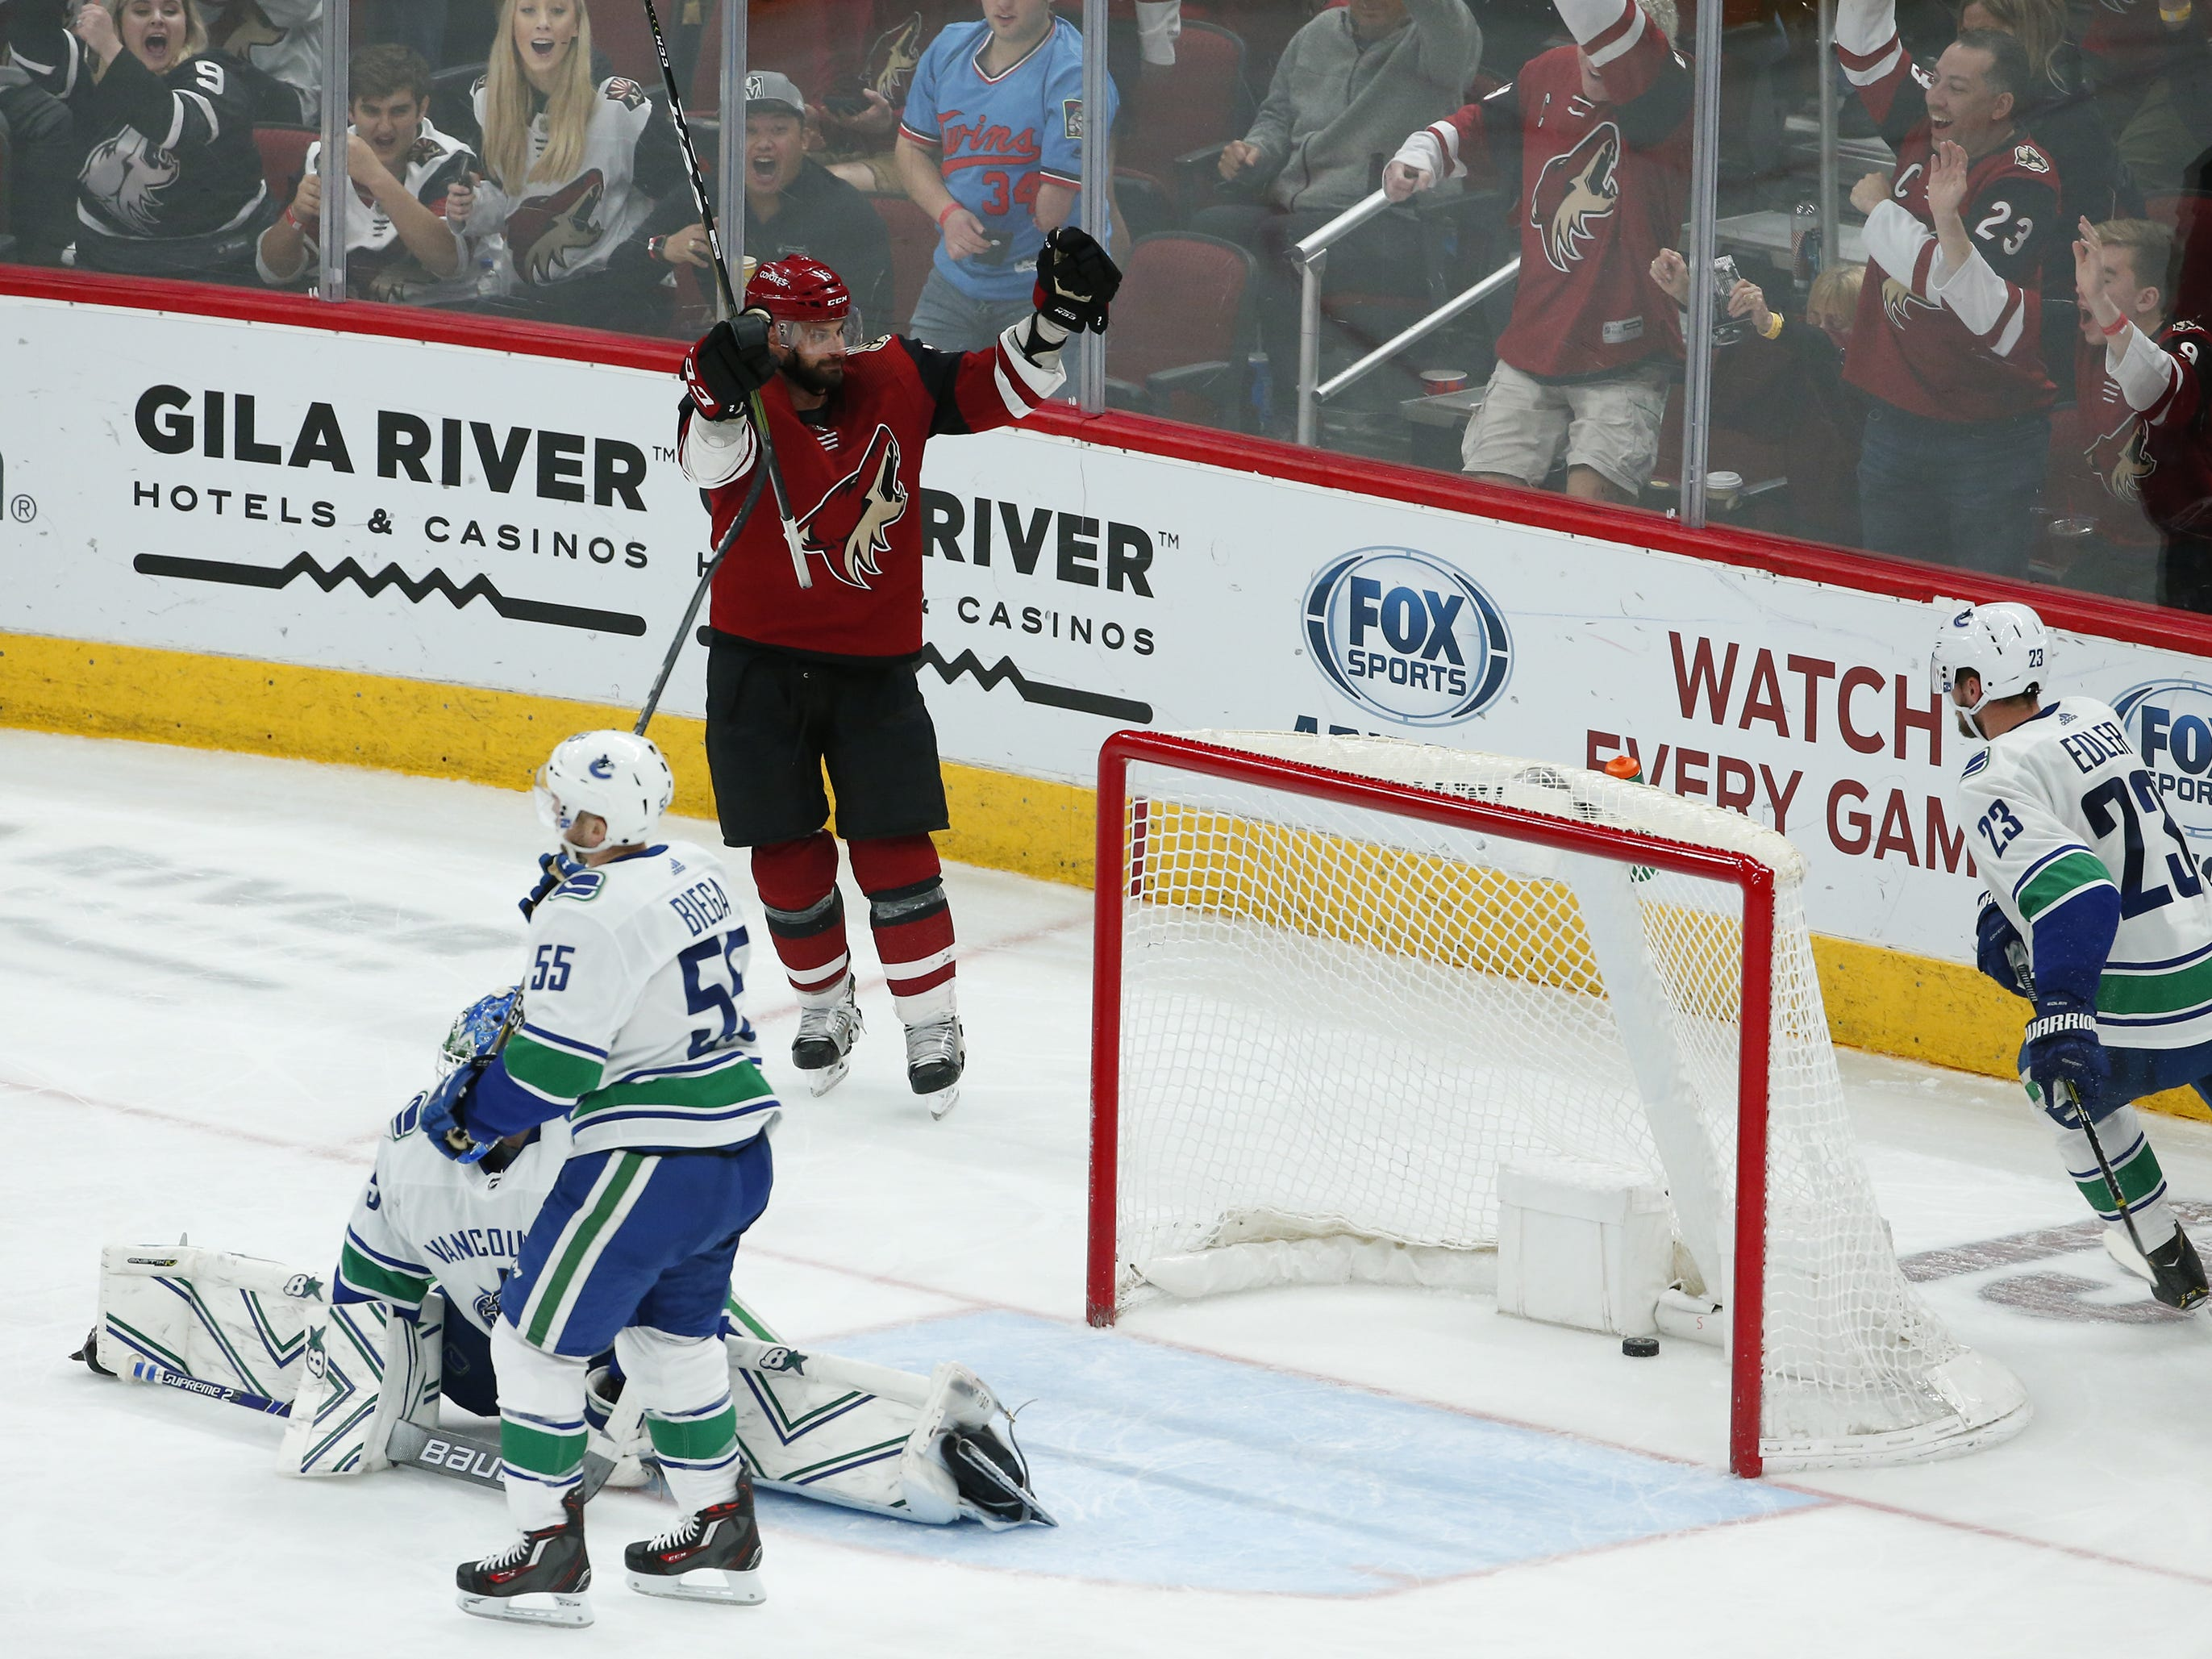 Arizona Coyotes center Brad Richardson (15) scores his fourth goal during a NHL game against the Vancouver Canucks at Gila River Arena in Glendale on February 28.